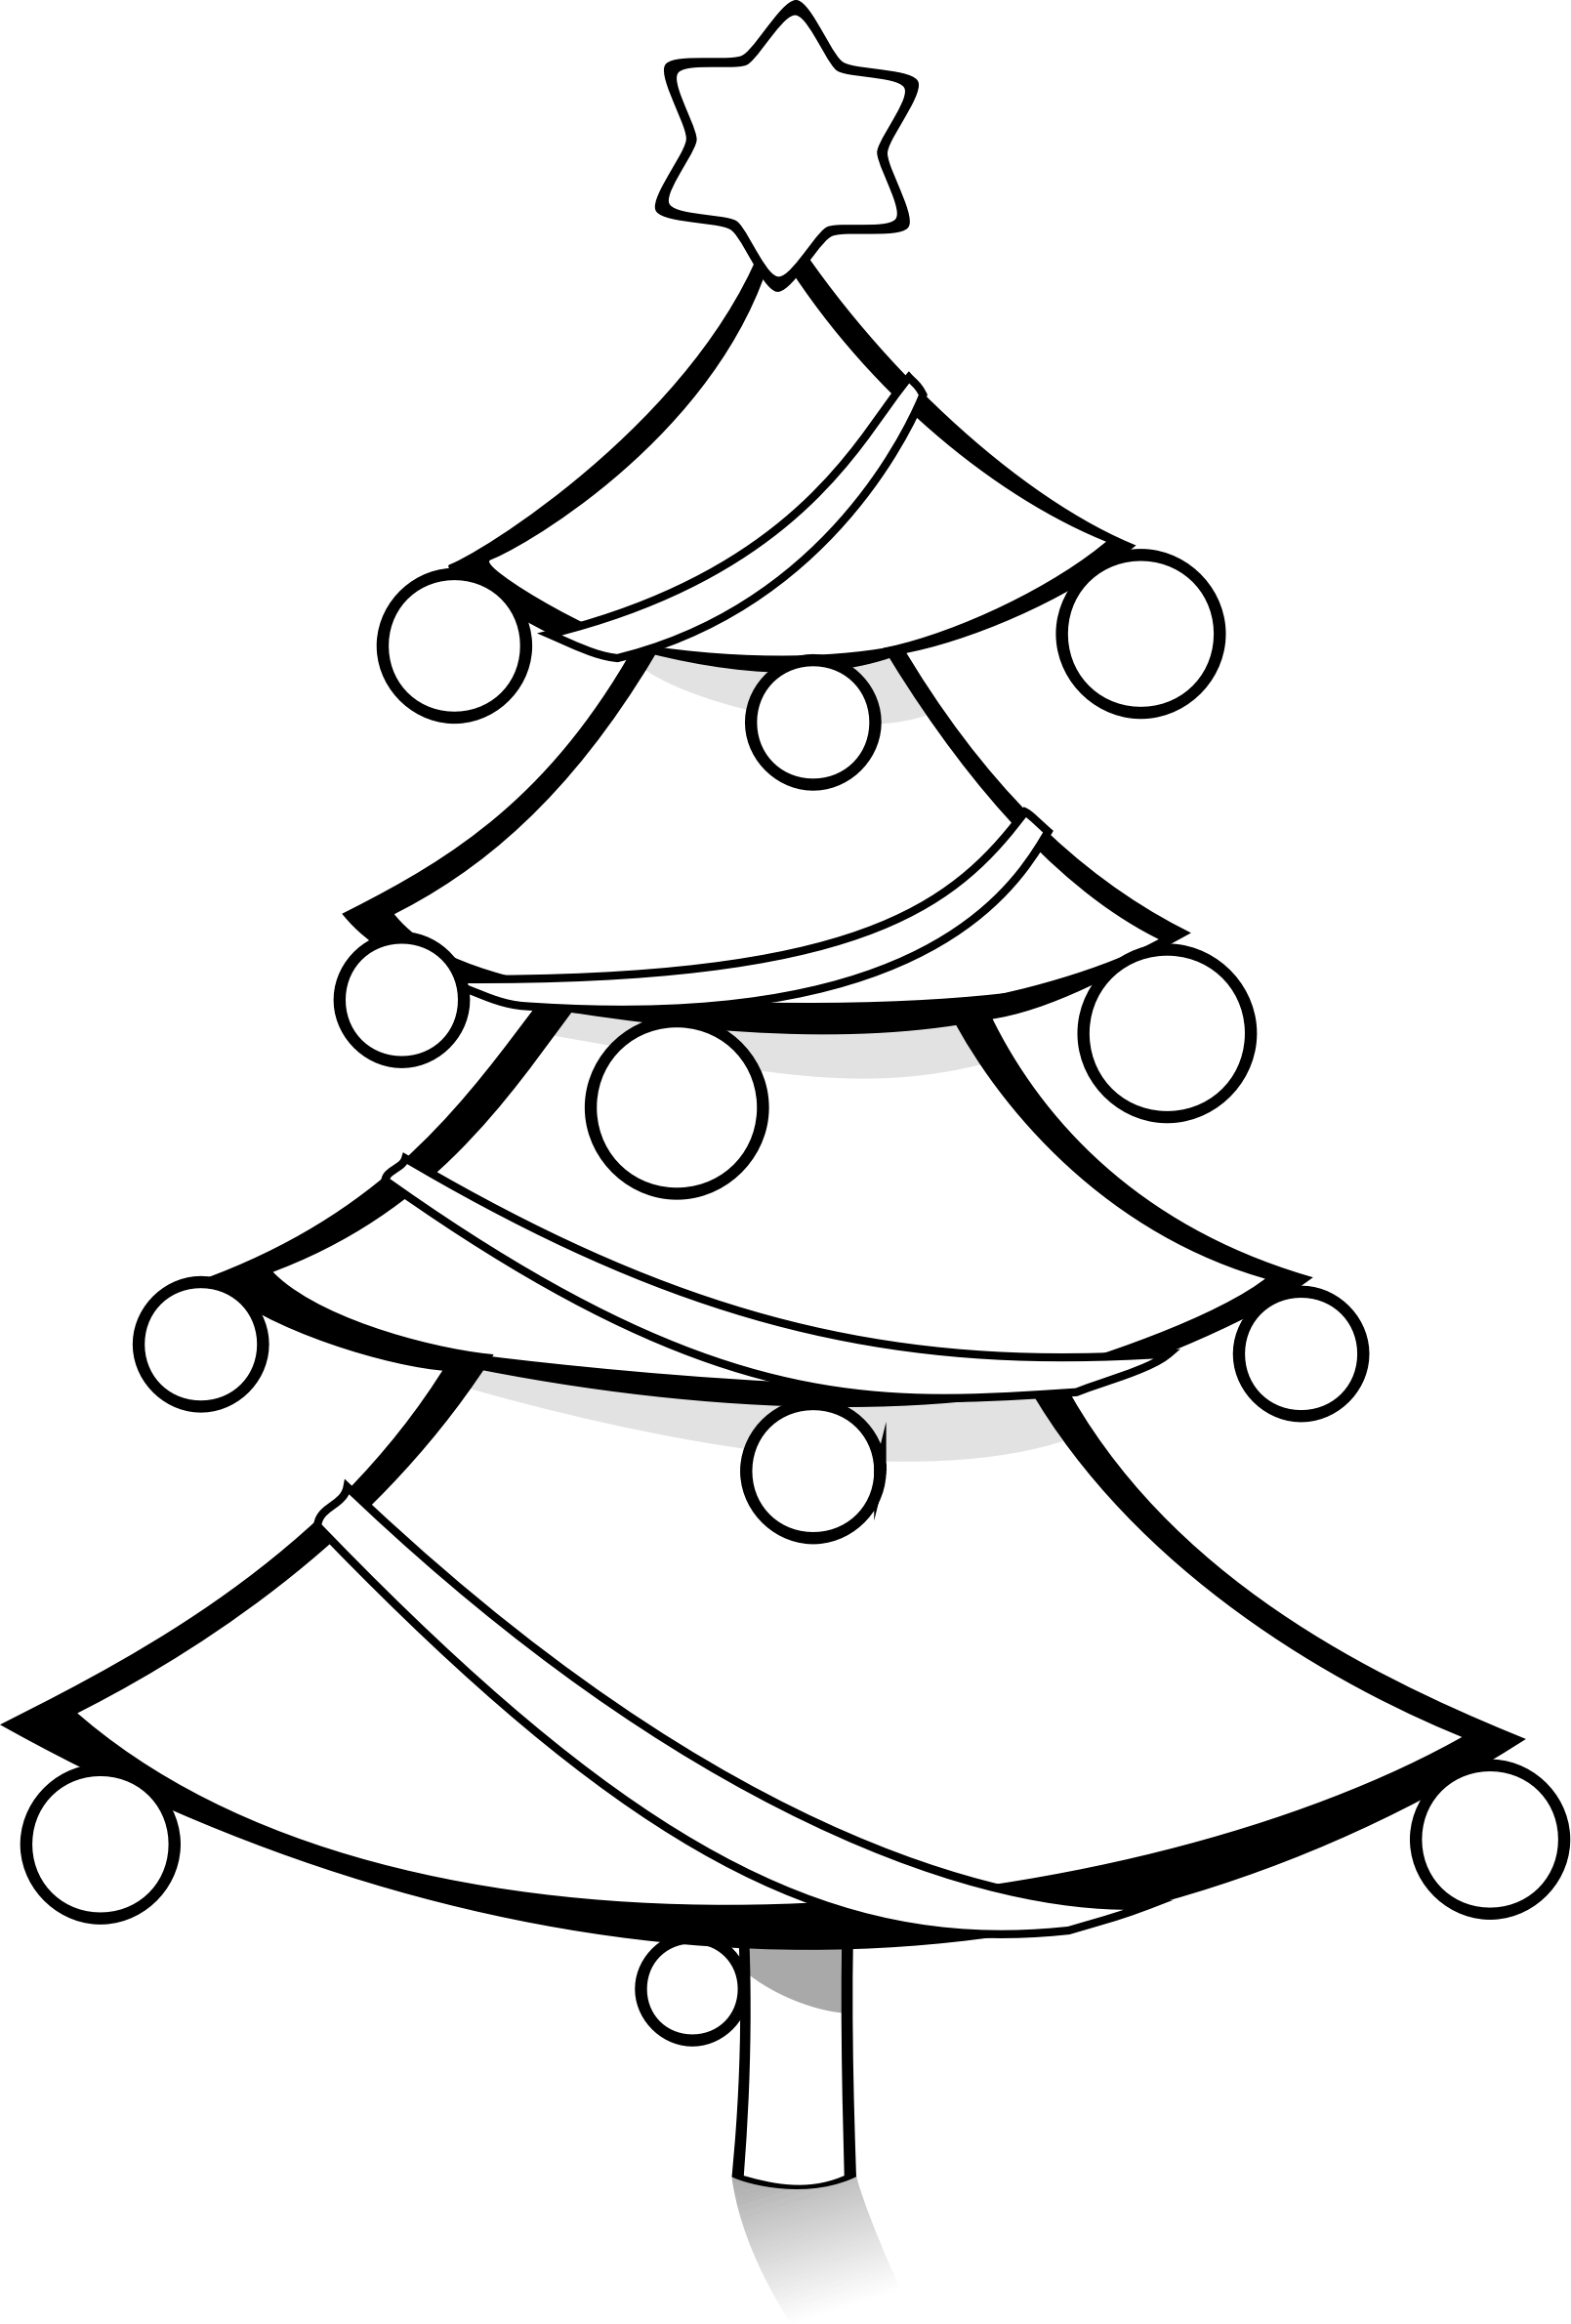 Free Christmas Tree Clip Art Black And White Download